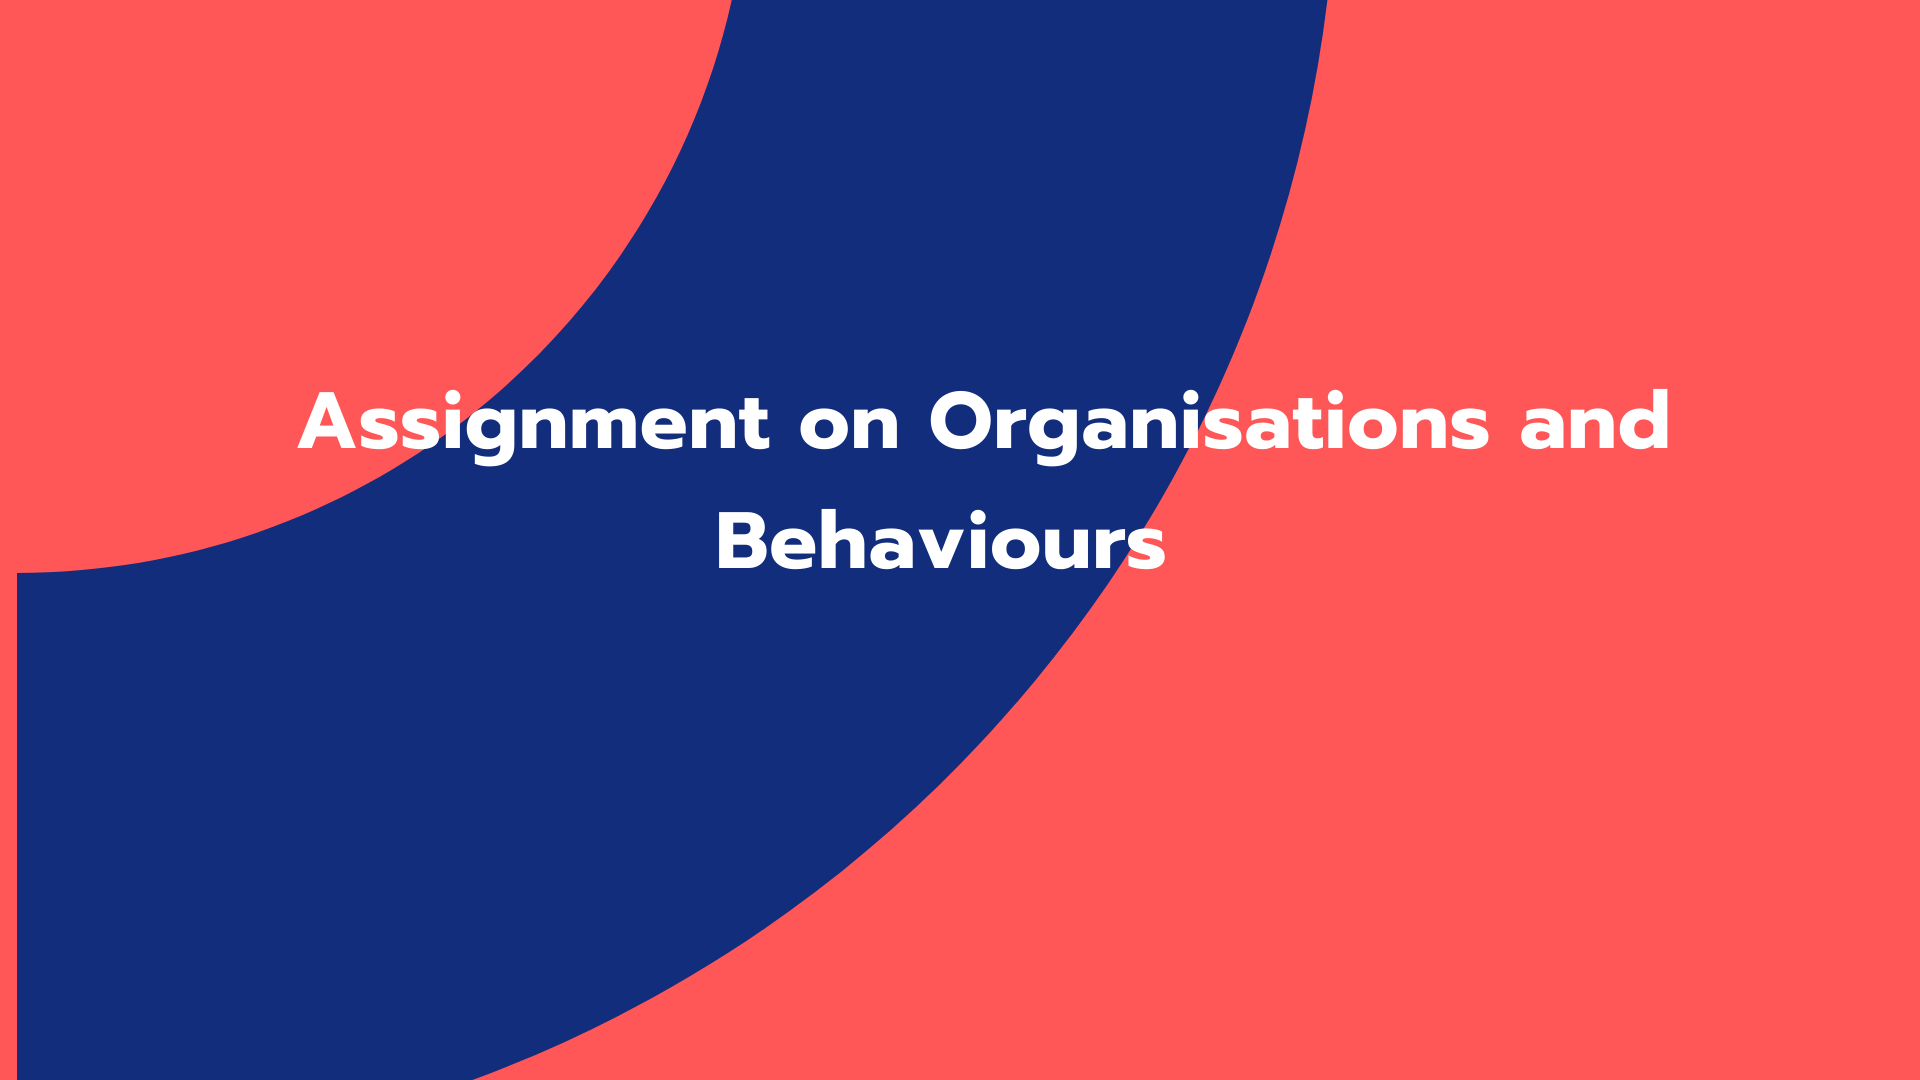 Assignment on Organisations and Behaviours